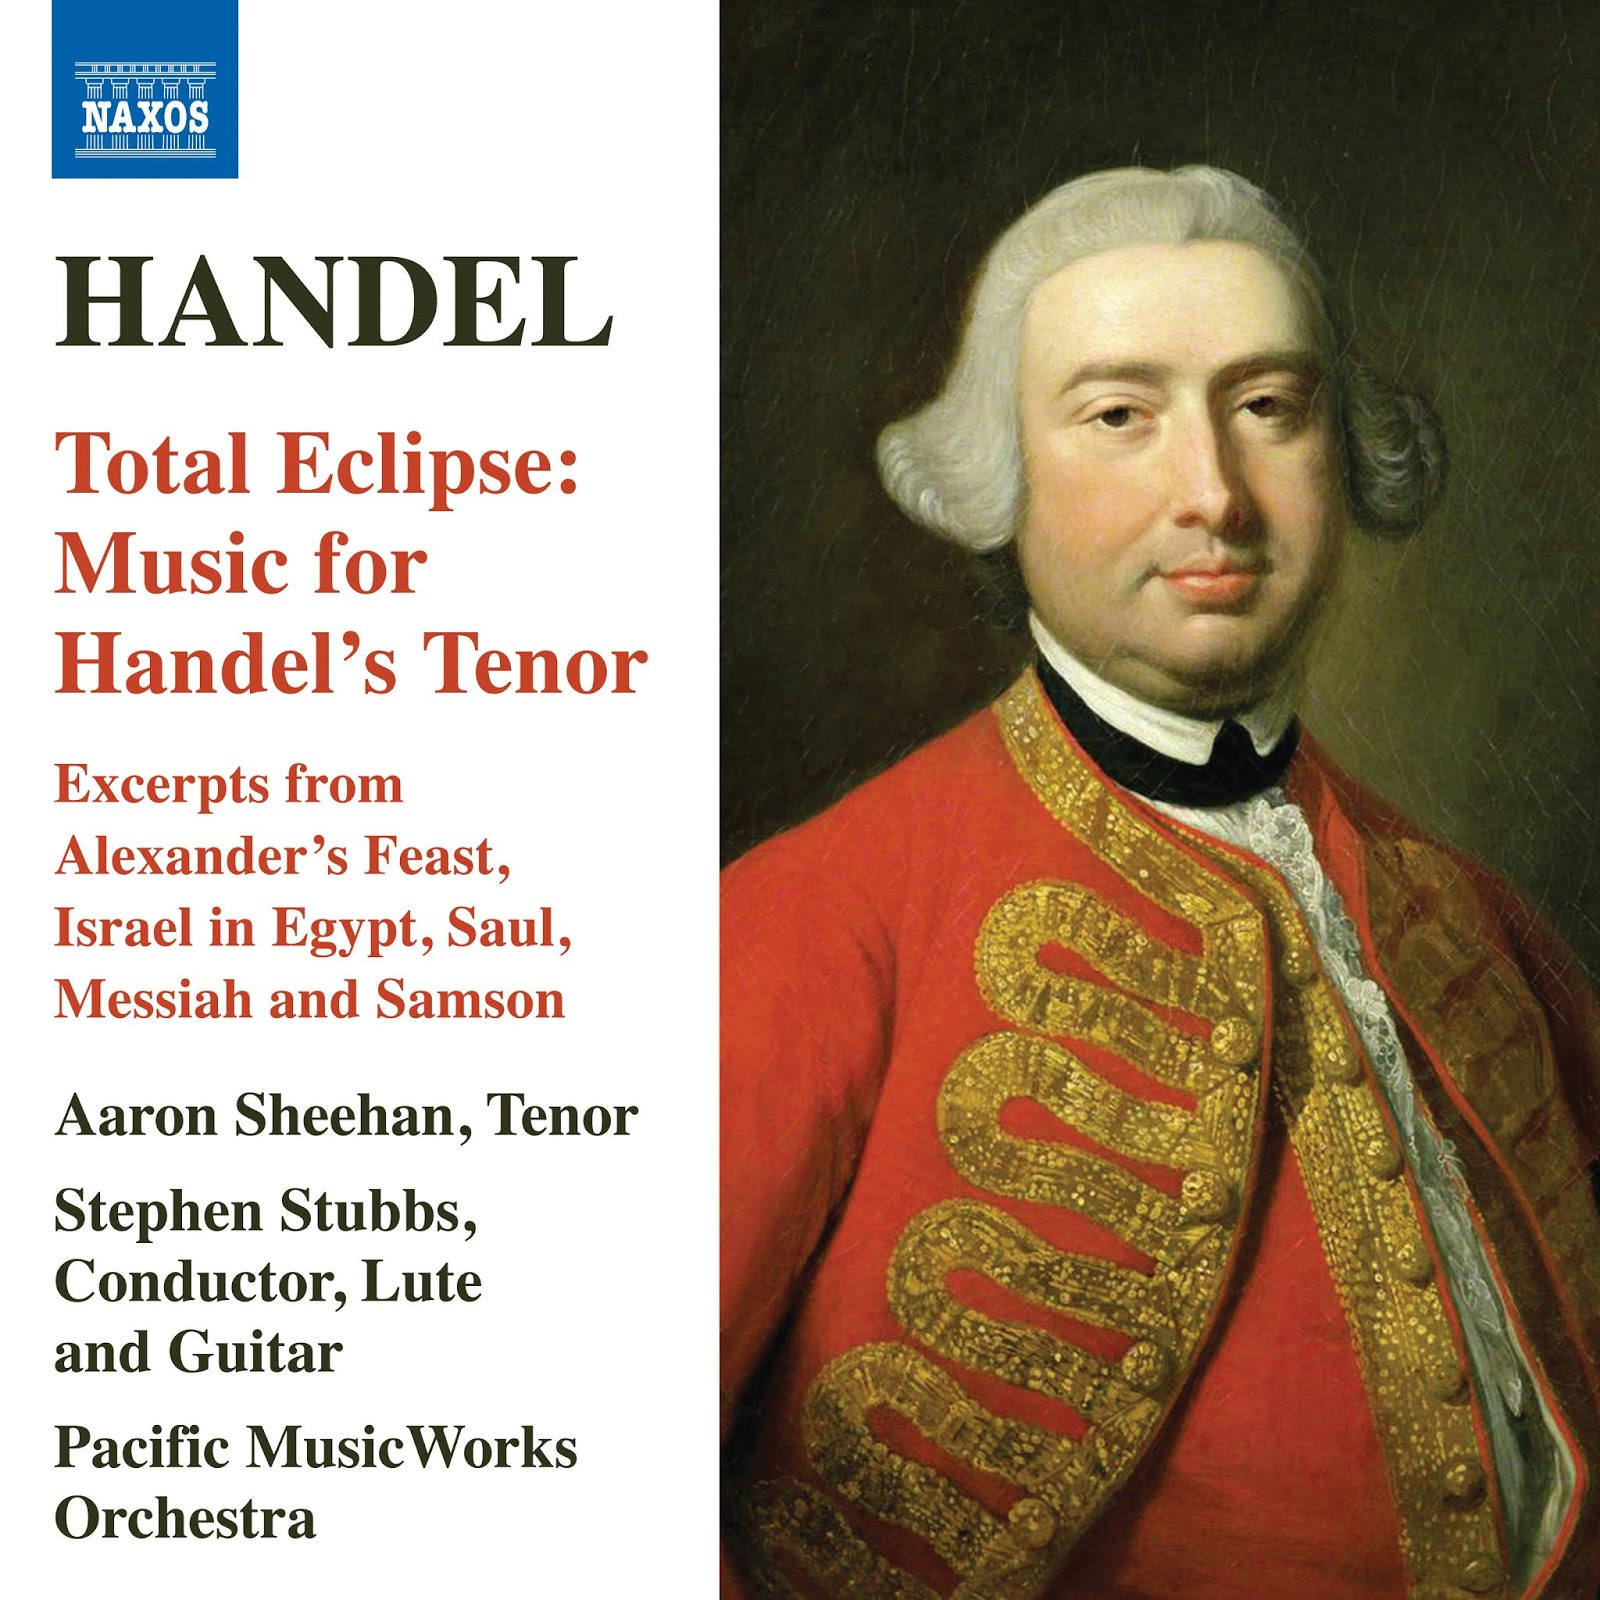 April 2019 RECORDING OF THE MONTH: Georg Friedrich Händel - TOTAL ECLIPSE: MUSIC FOR HANDEL'S TENOR (Naxos 8.573914)